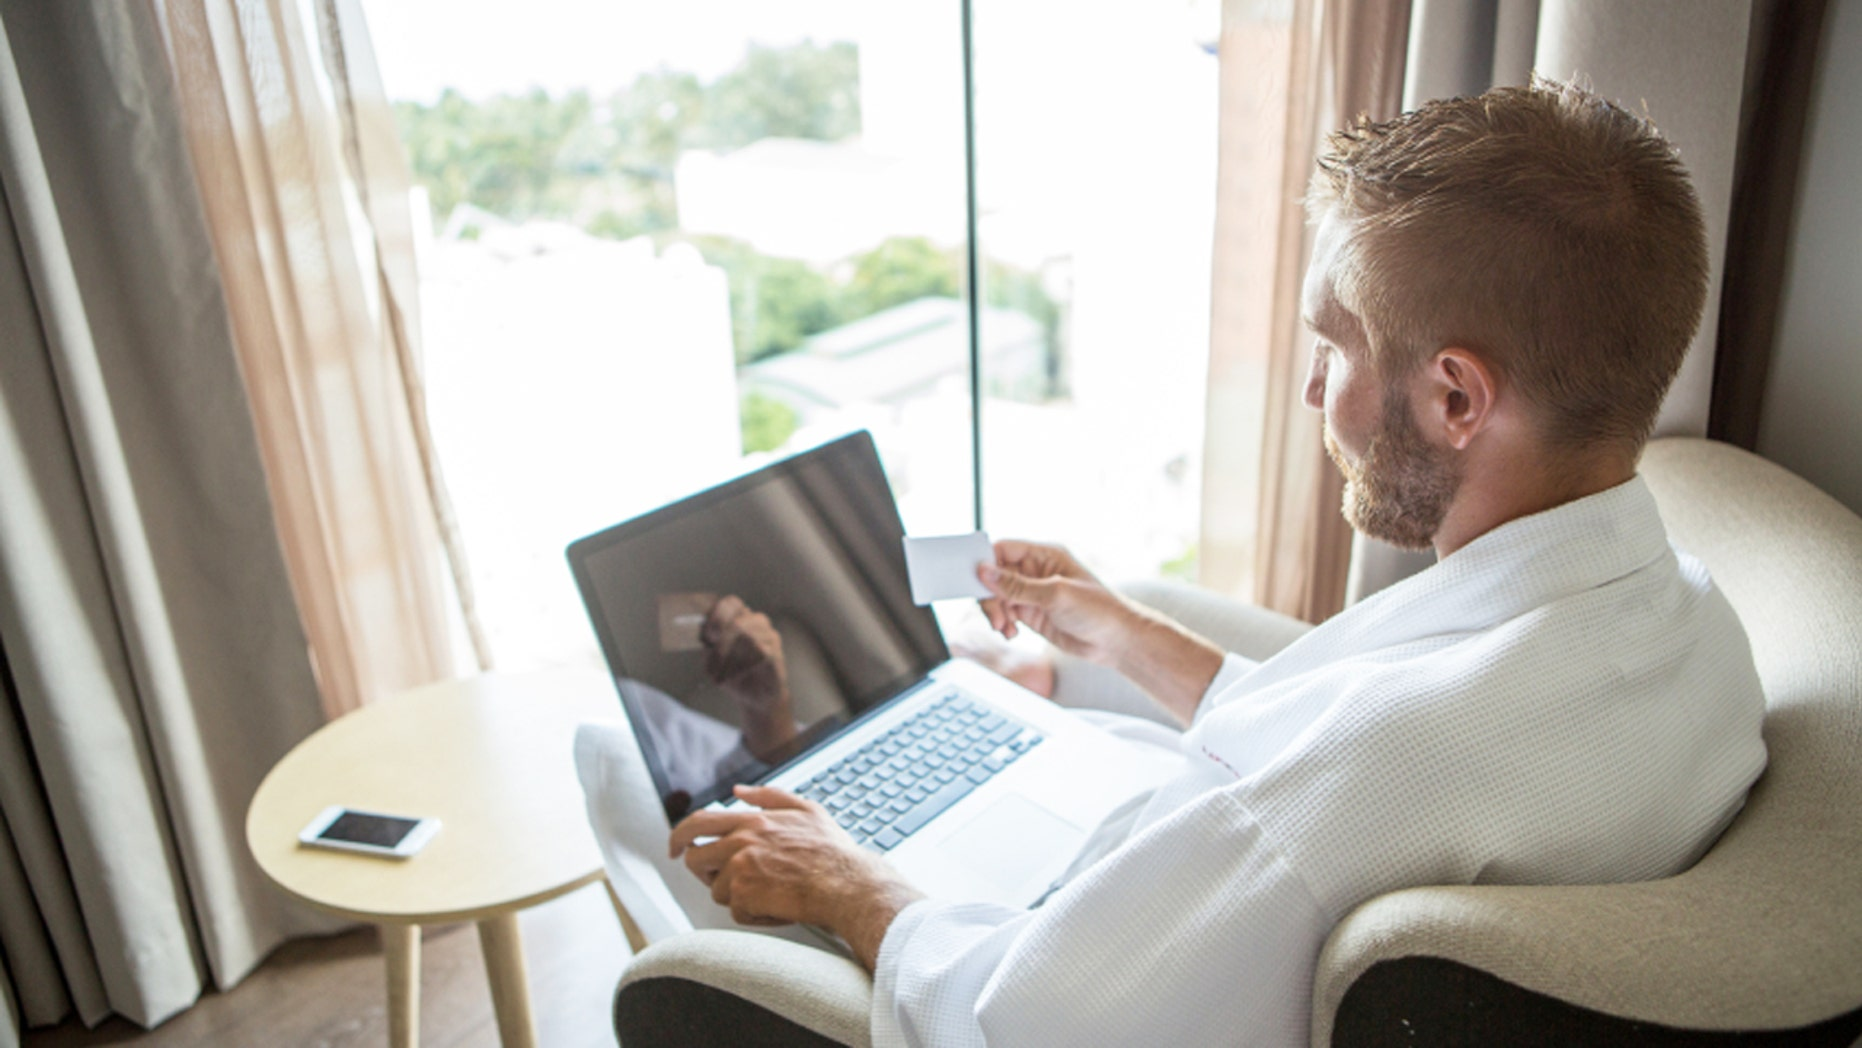 Most hotel guests now expect easy access to Wi-Fi.